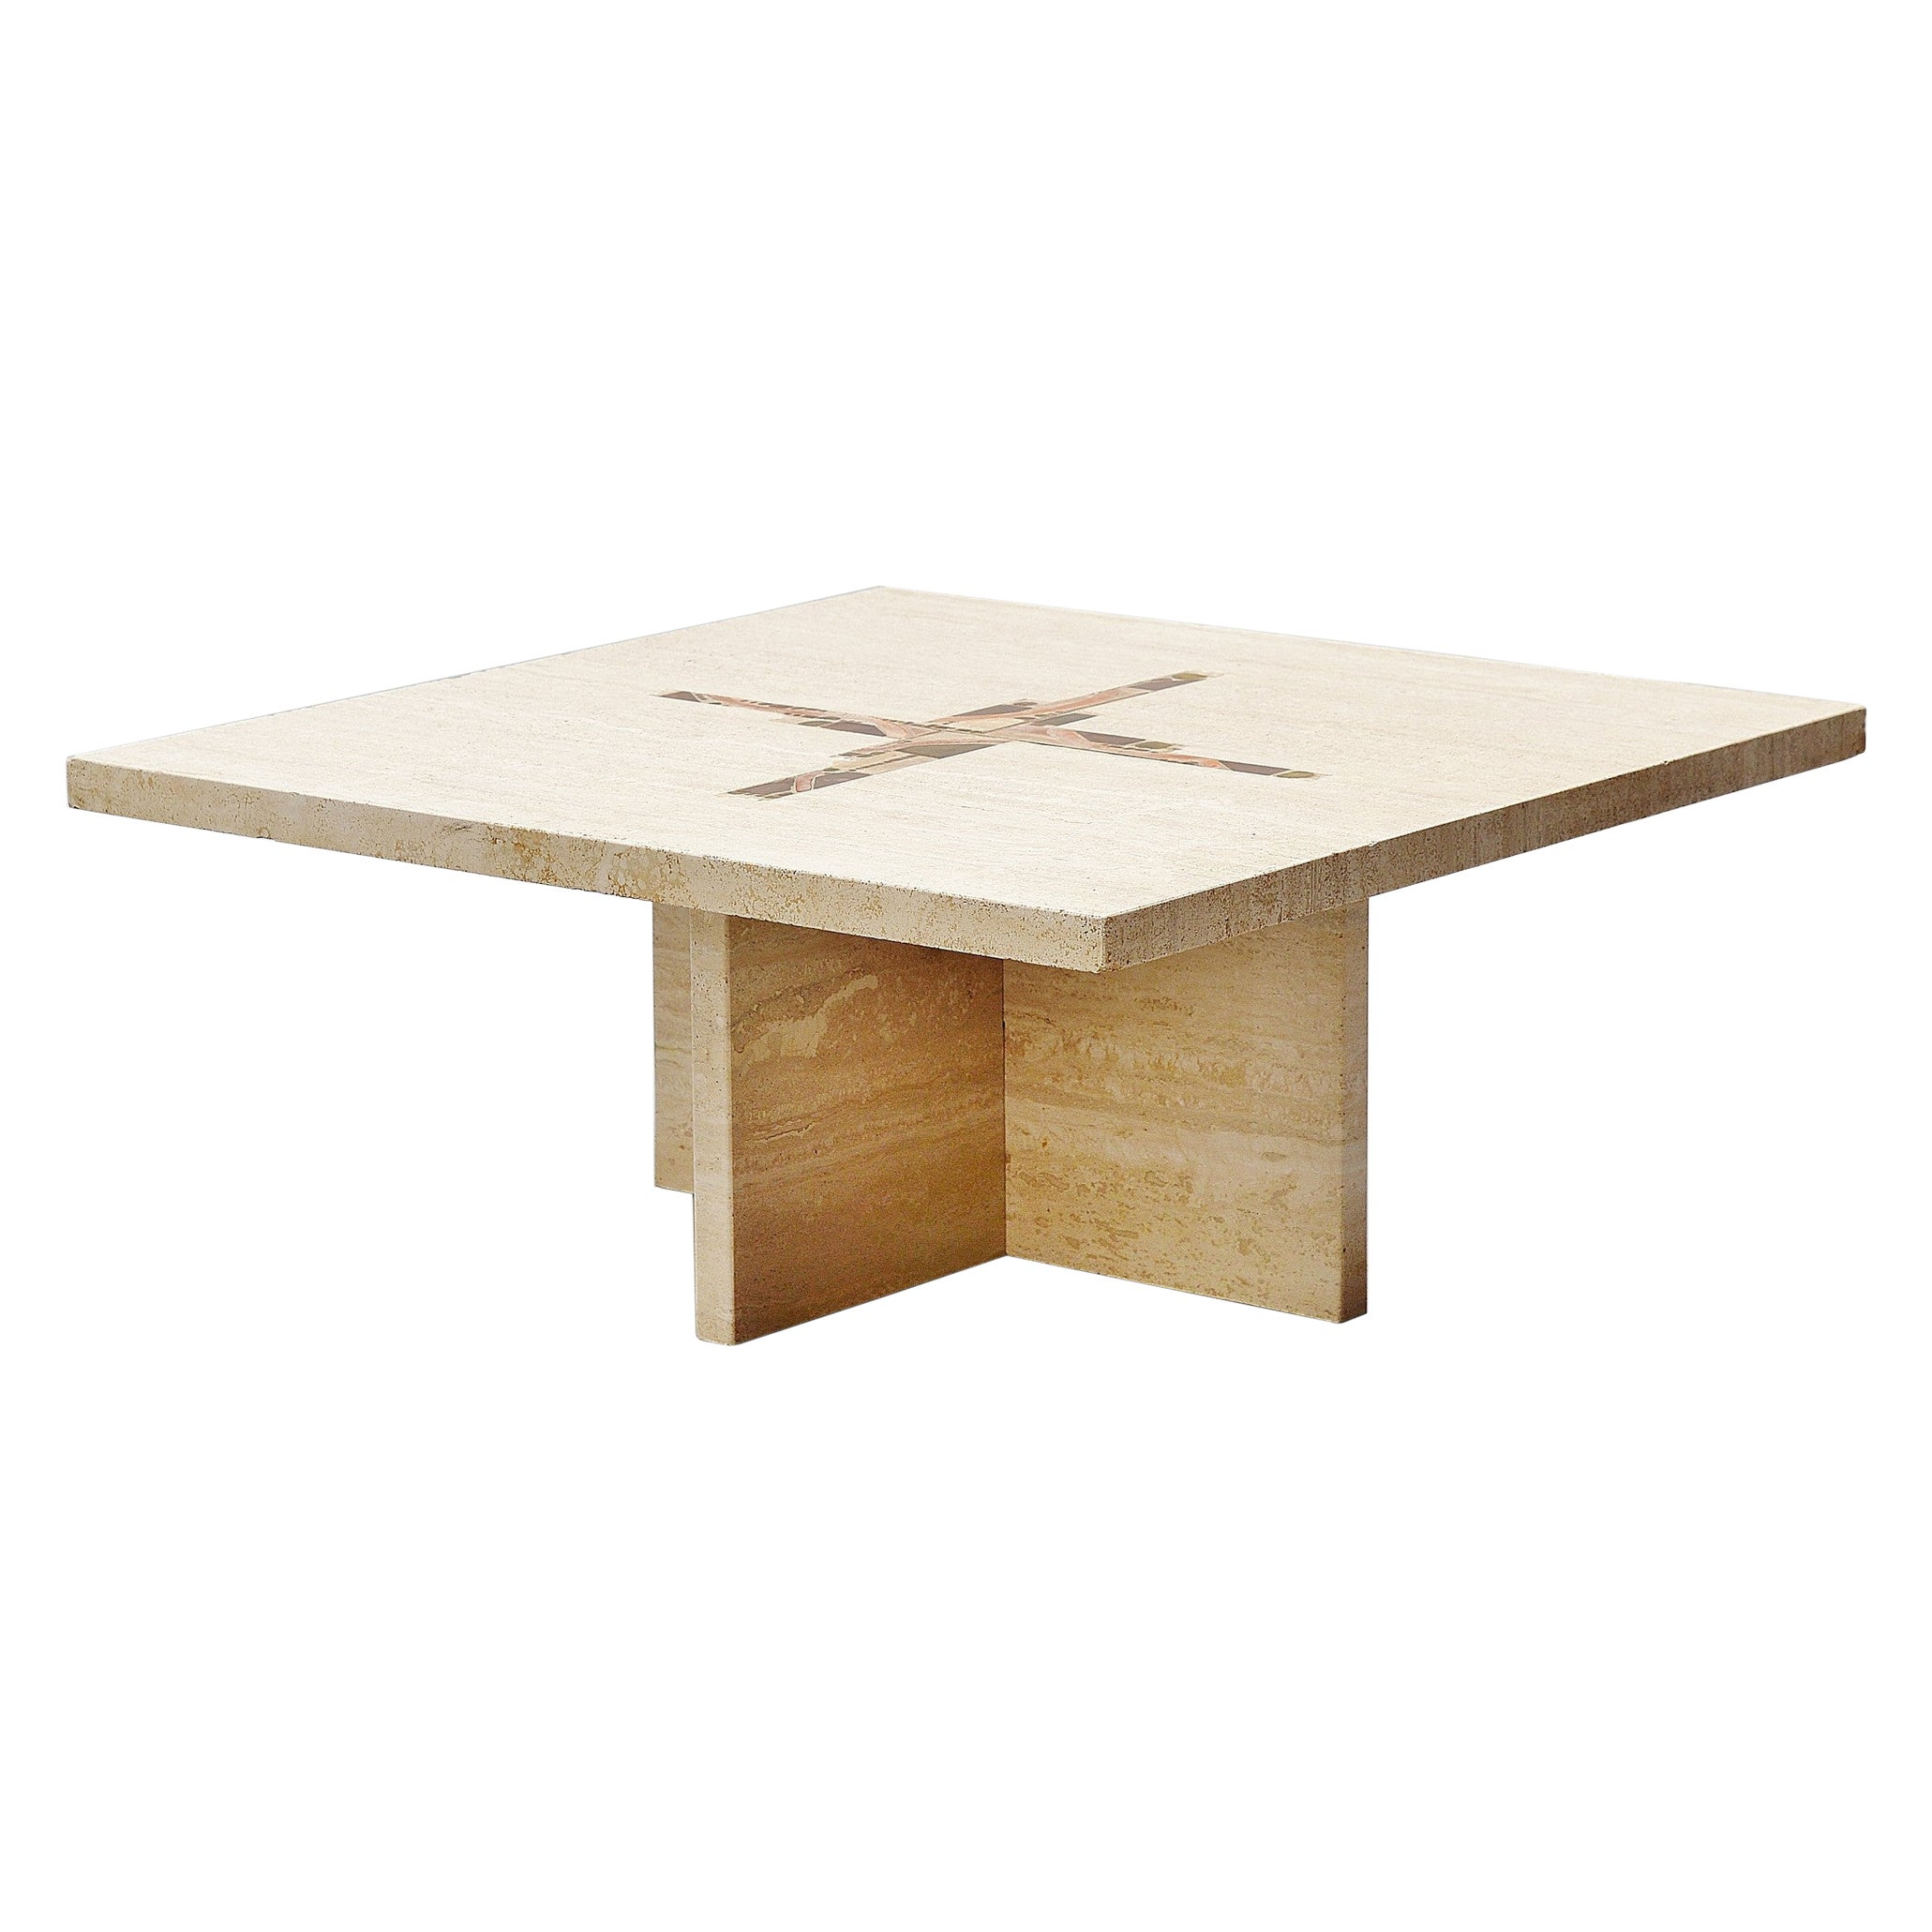 Paul Kingma Travertin Coffee Table, Holland, 1978